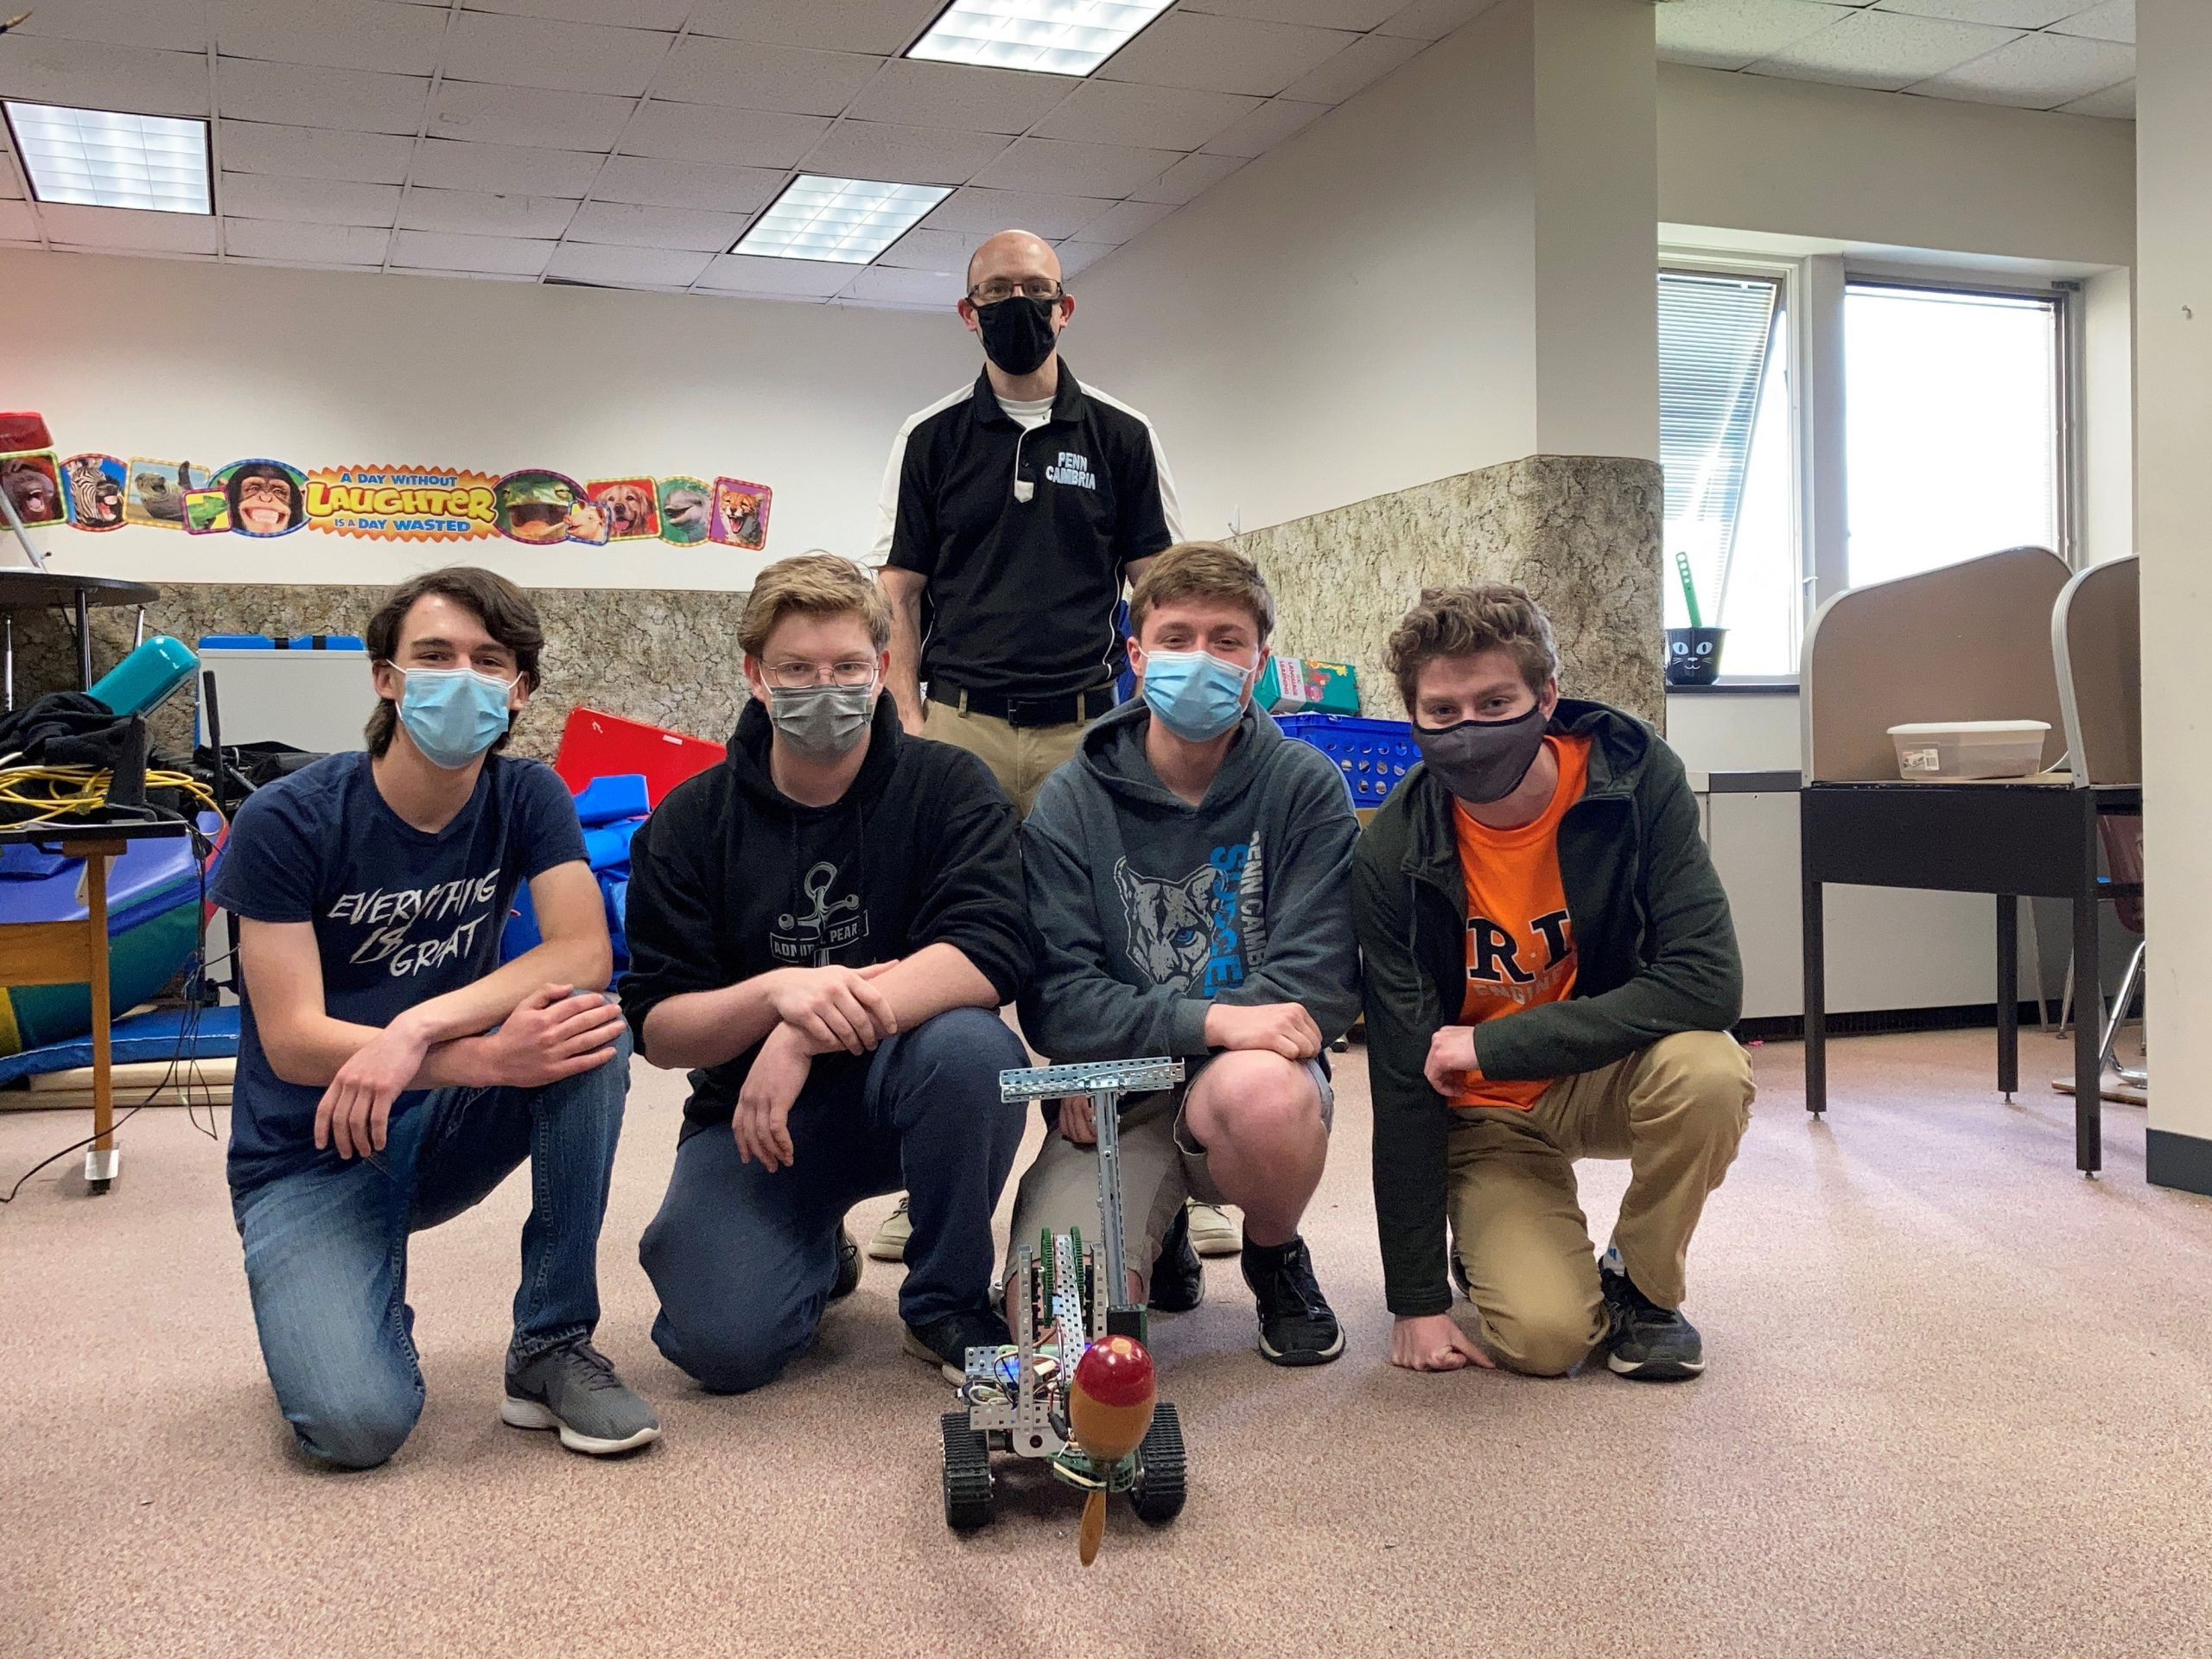 Congratulations to the PCHS Team that won first place in the Sea, Air, and Land Challenge!